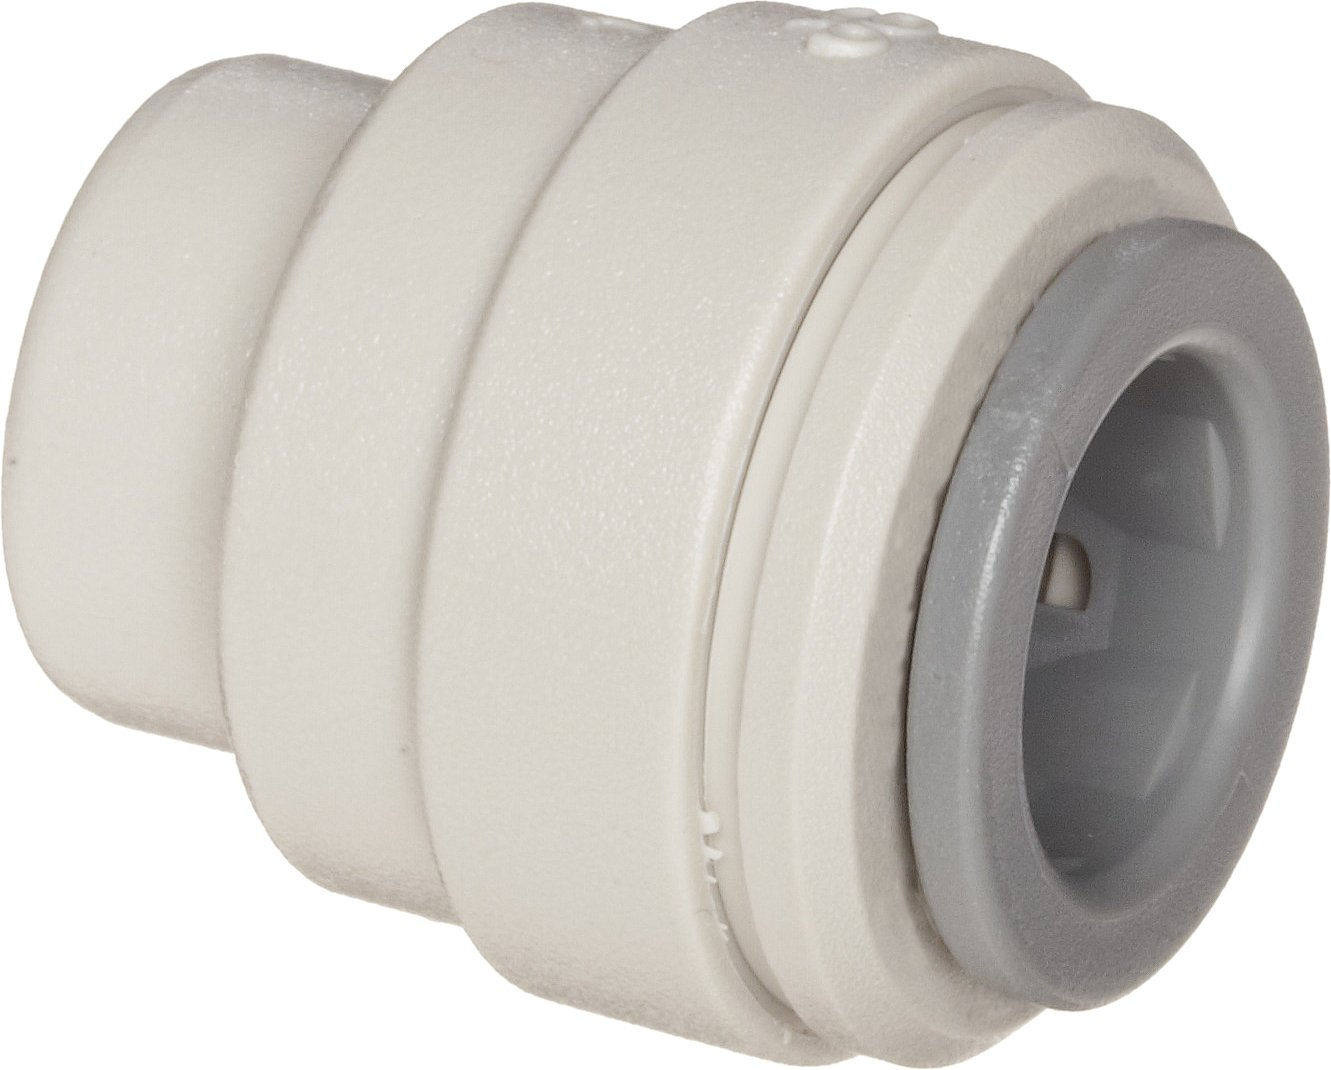 John Guest Acetal Copolymer Tube Fitting, End Stop, 3/8'' Tube OD (Pack of 10) by John Guest